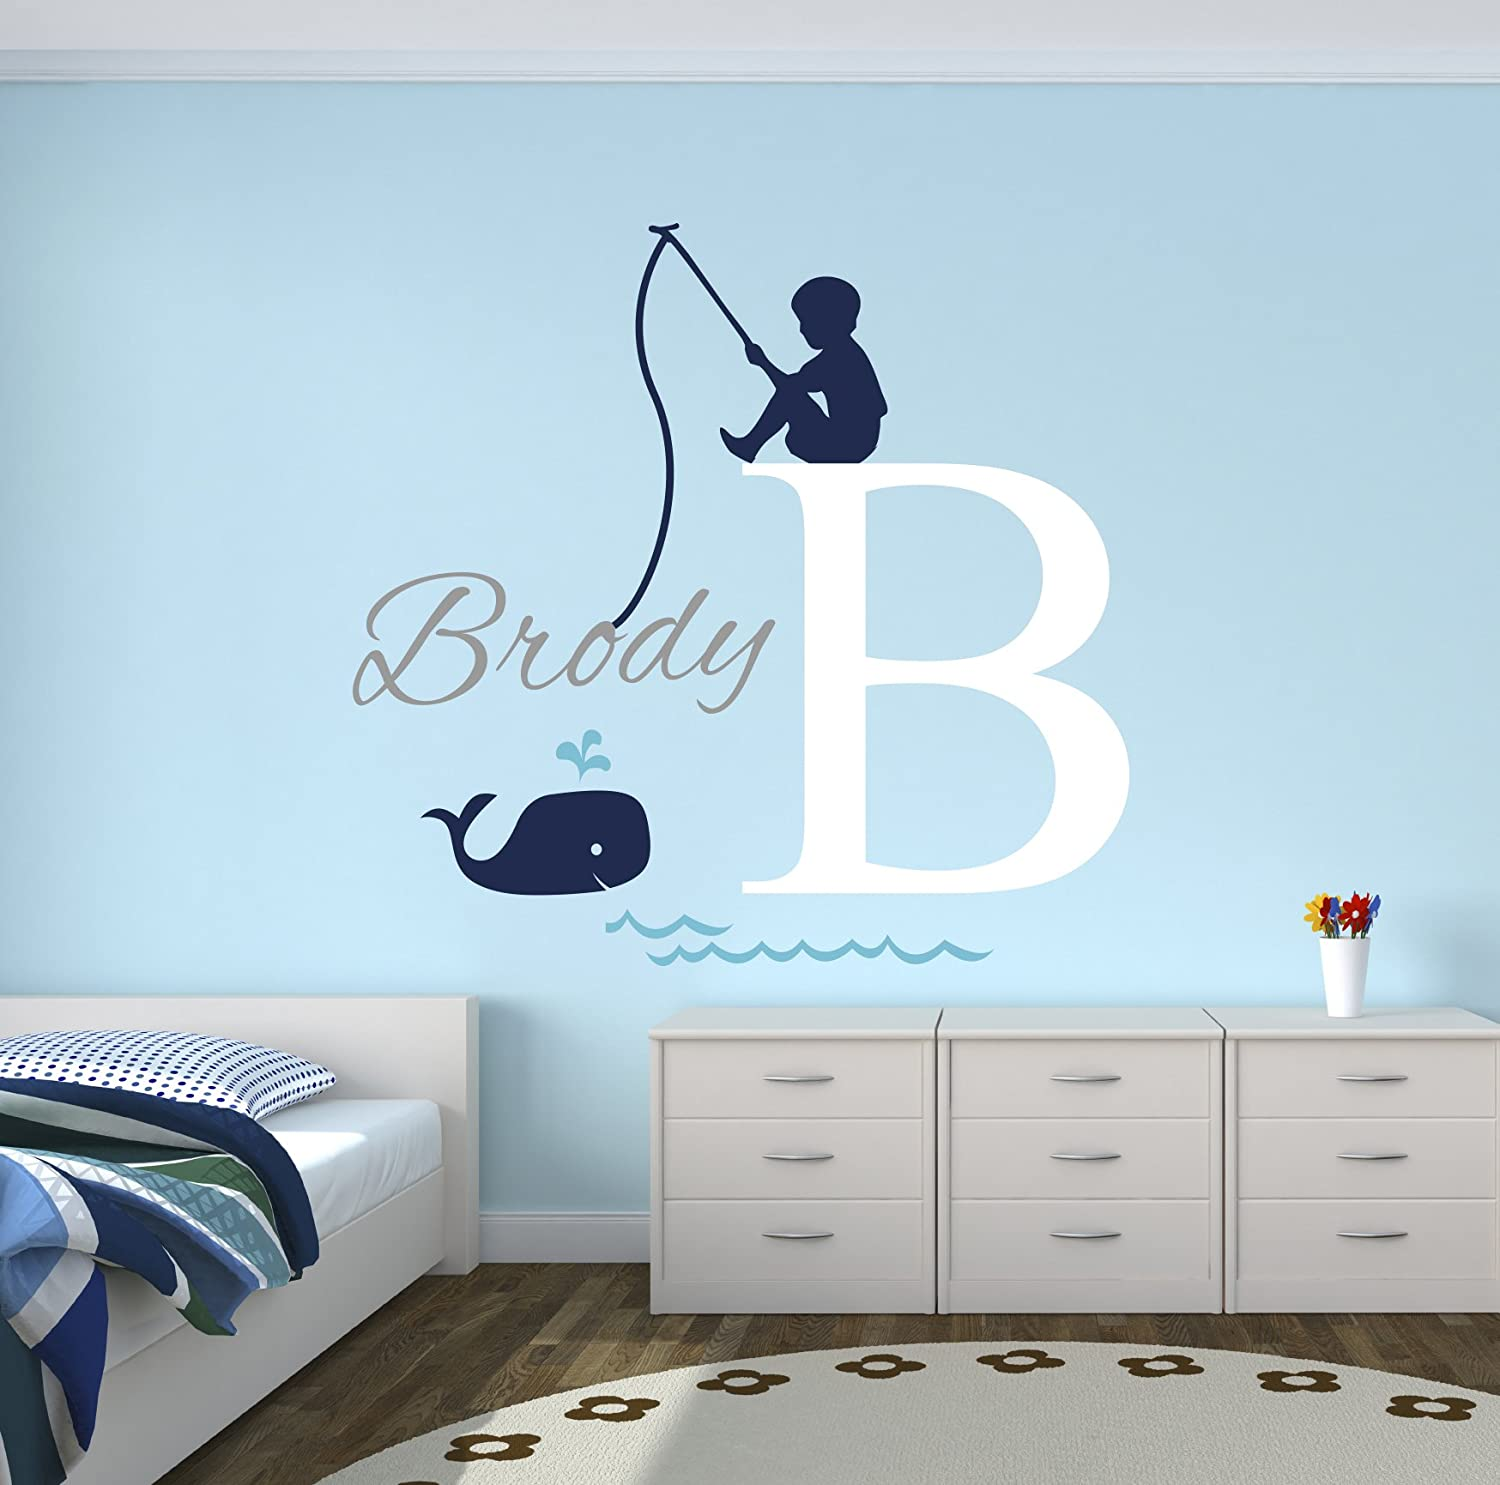 Fishing Boy Personalized Name Wall Decal - Baby Boy Room Decor - Nursery Wall Decals - Nautical Wall Decals - Whale Vinyl Wall Sticker